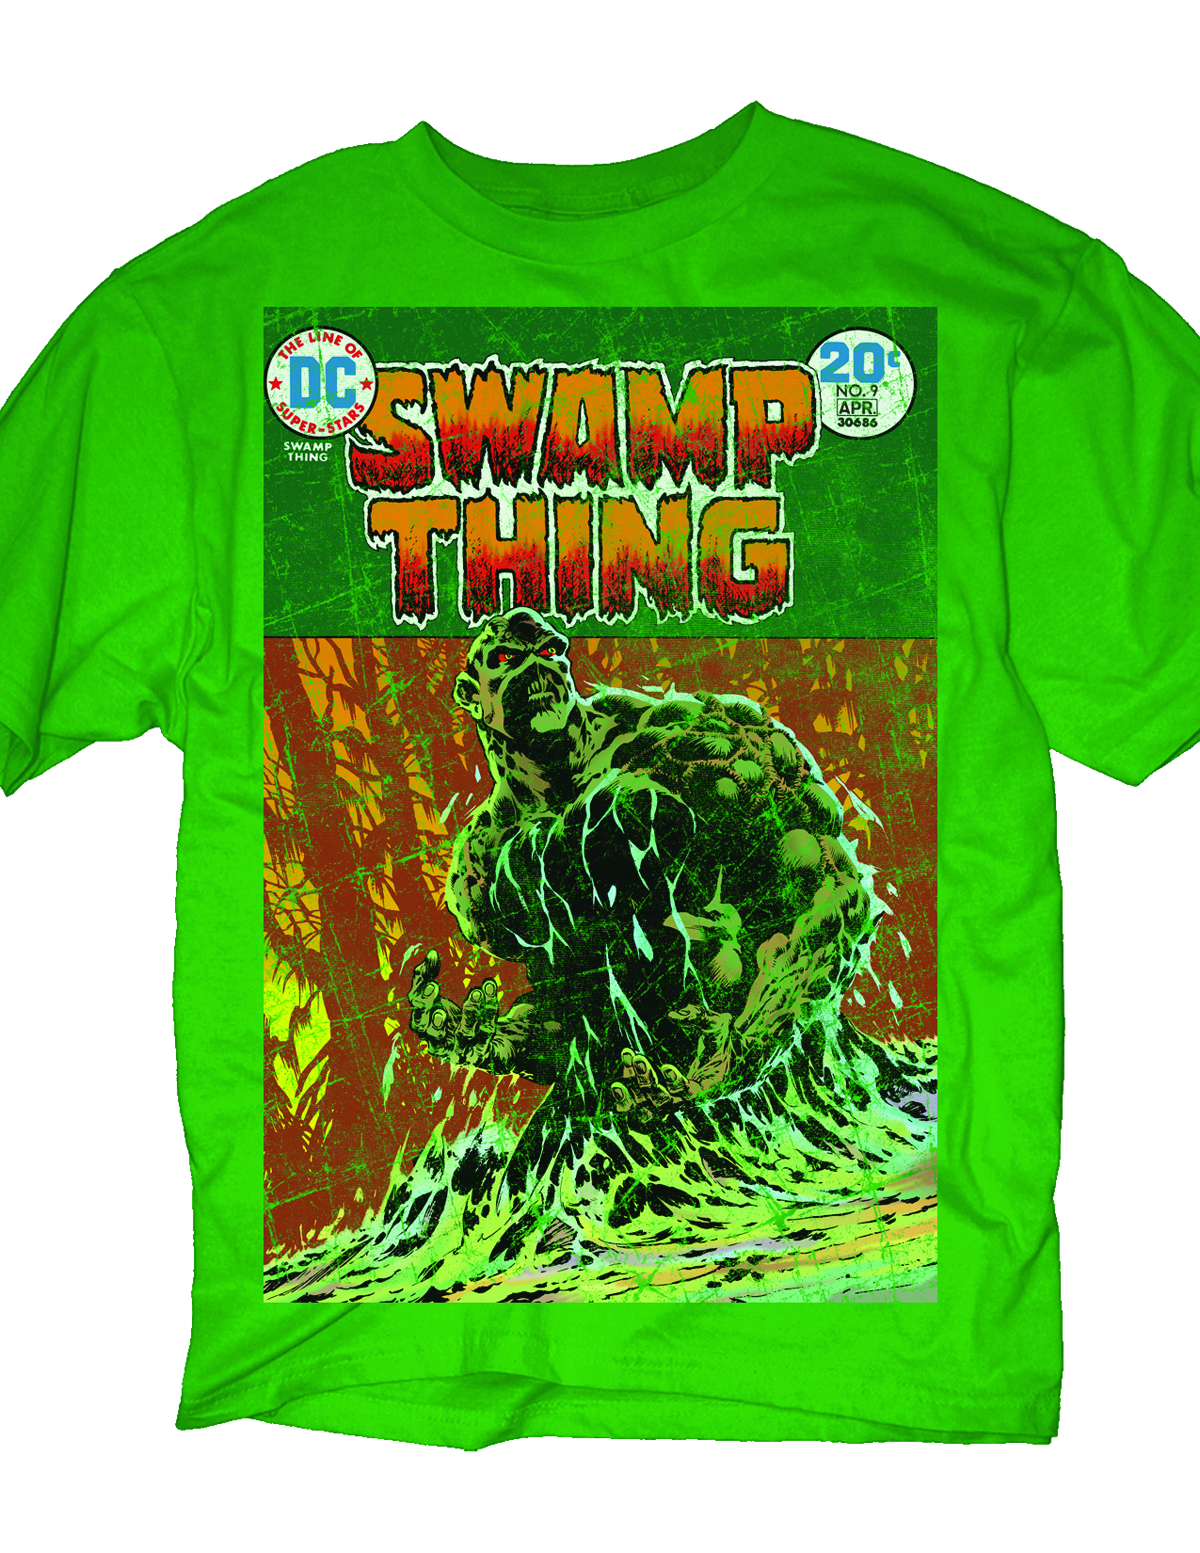 DC HEROES SWAMP THING COVER PX GREEN T/S MED